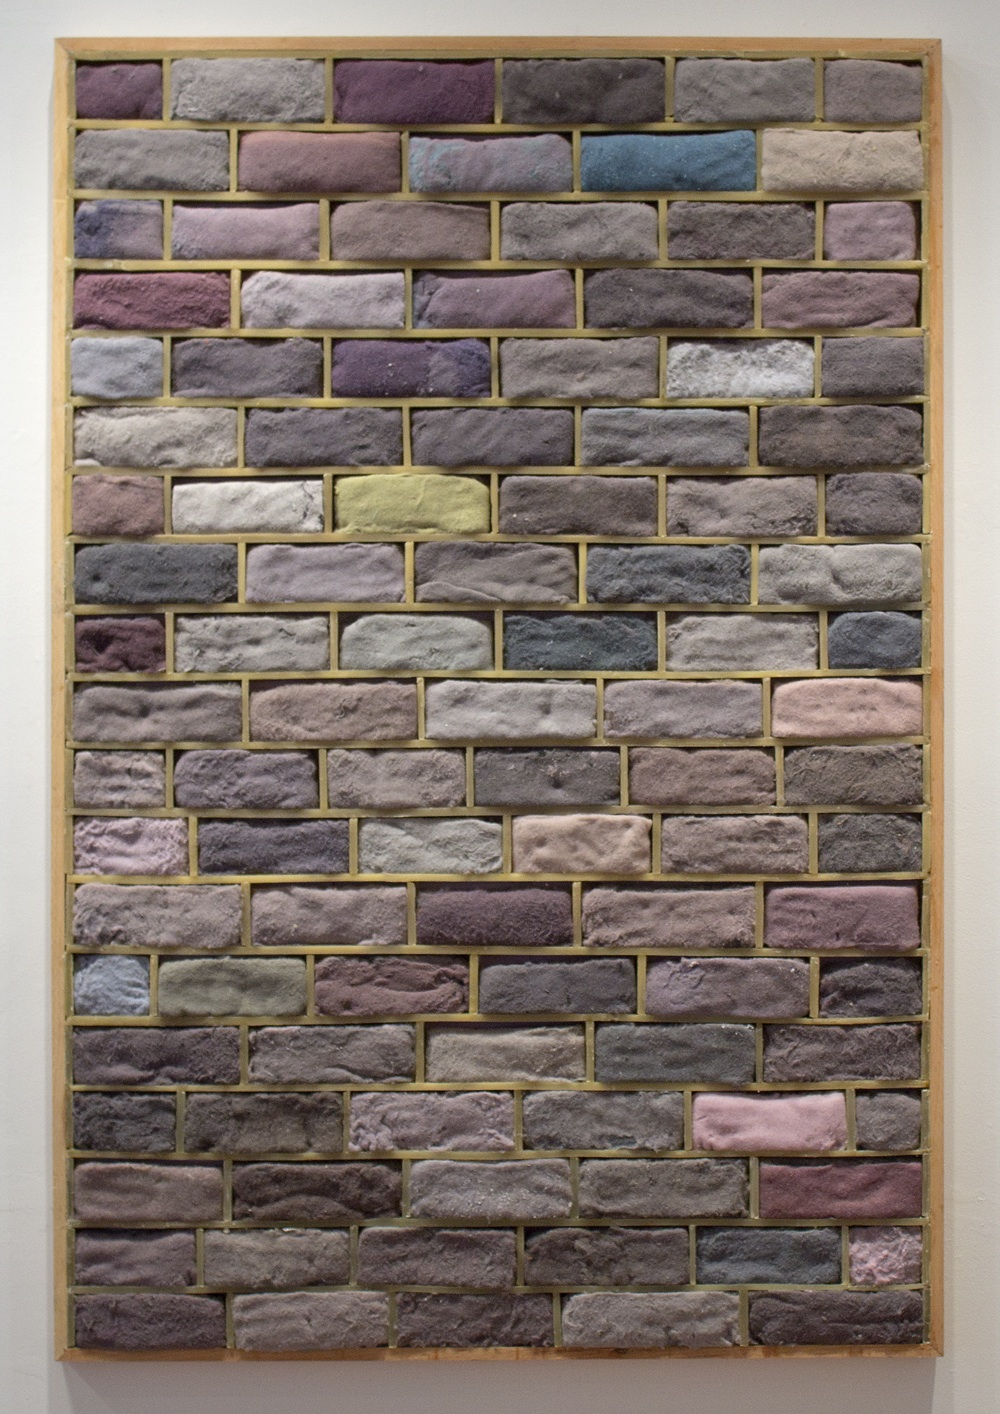 02_Esposito_Chris lint brick-1